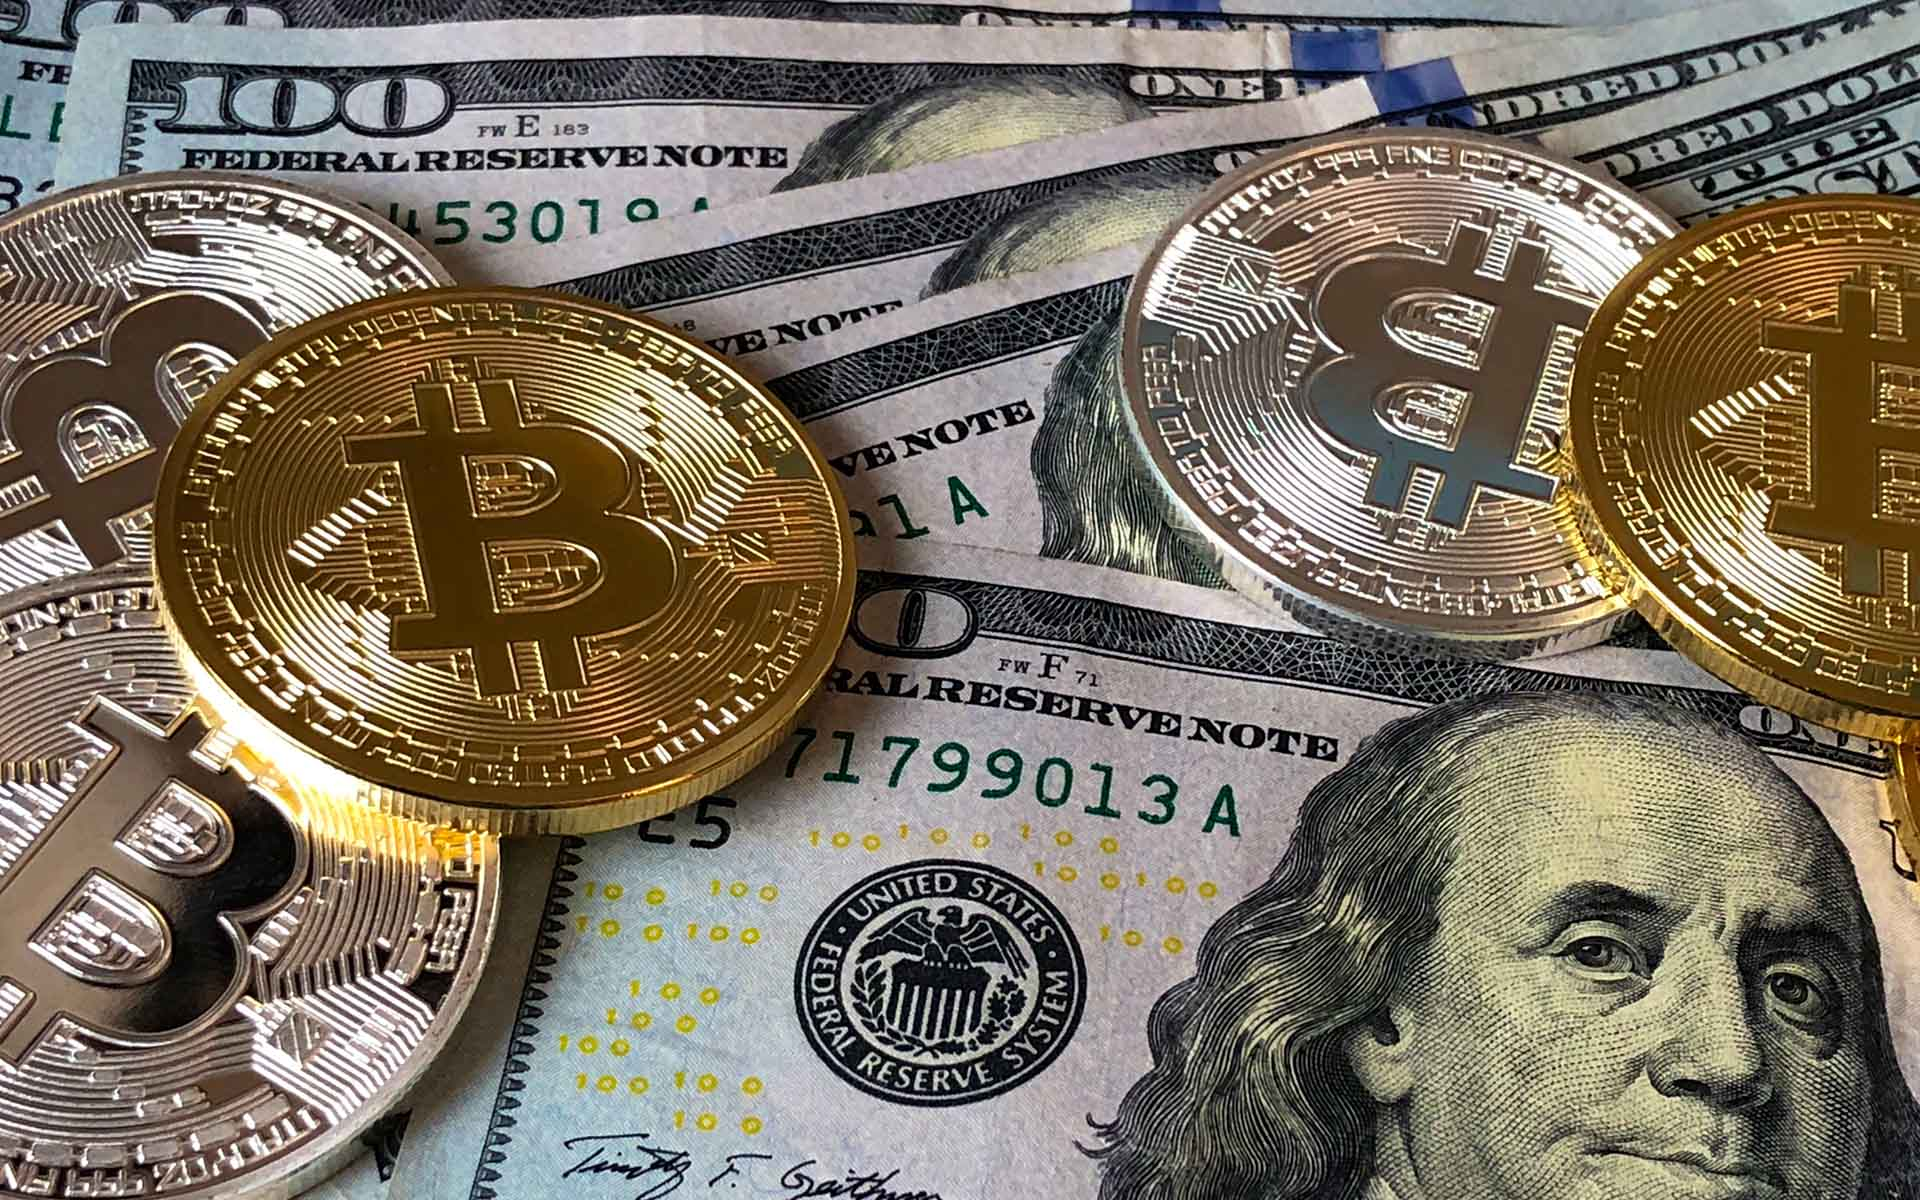 pex bitcoin dollars - Mainstream Adoption: Wyoming Aims To Become The Silicon Valley Of Crypto Where Bitcoin (BTC) Could Be Like Fiat Currencies